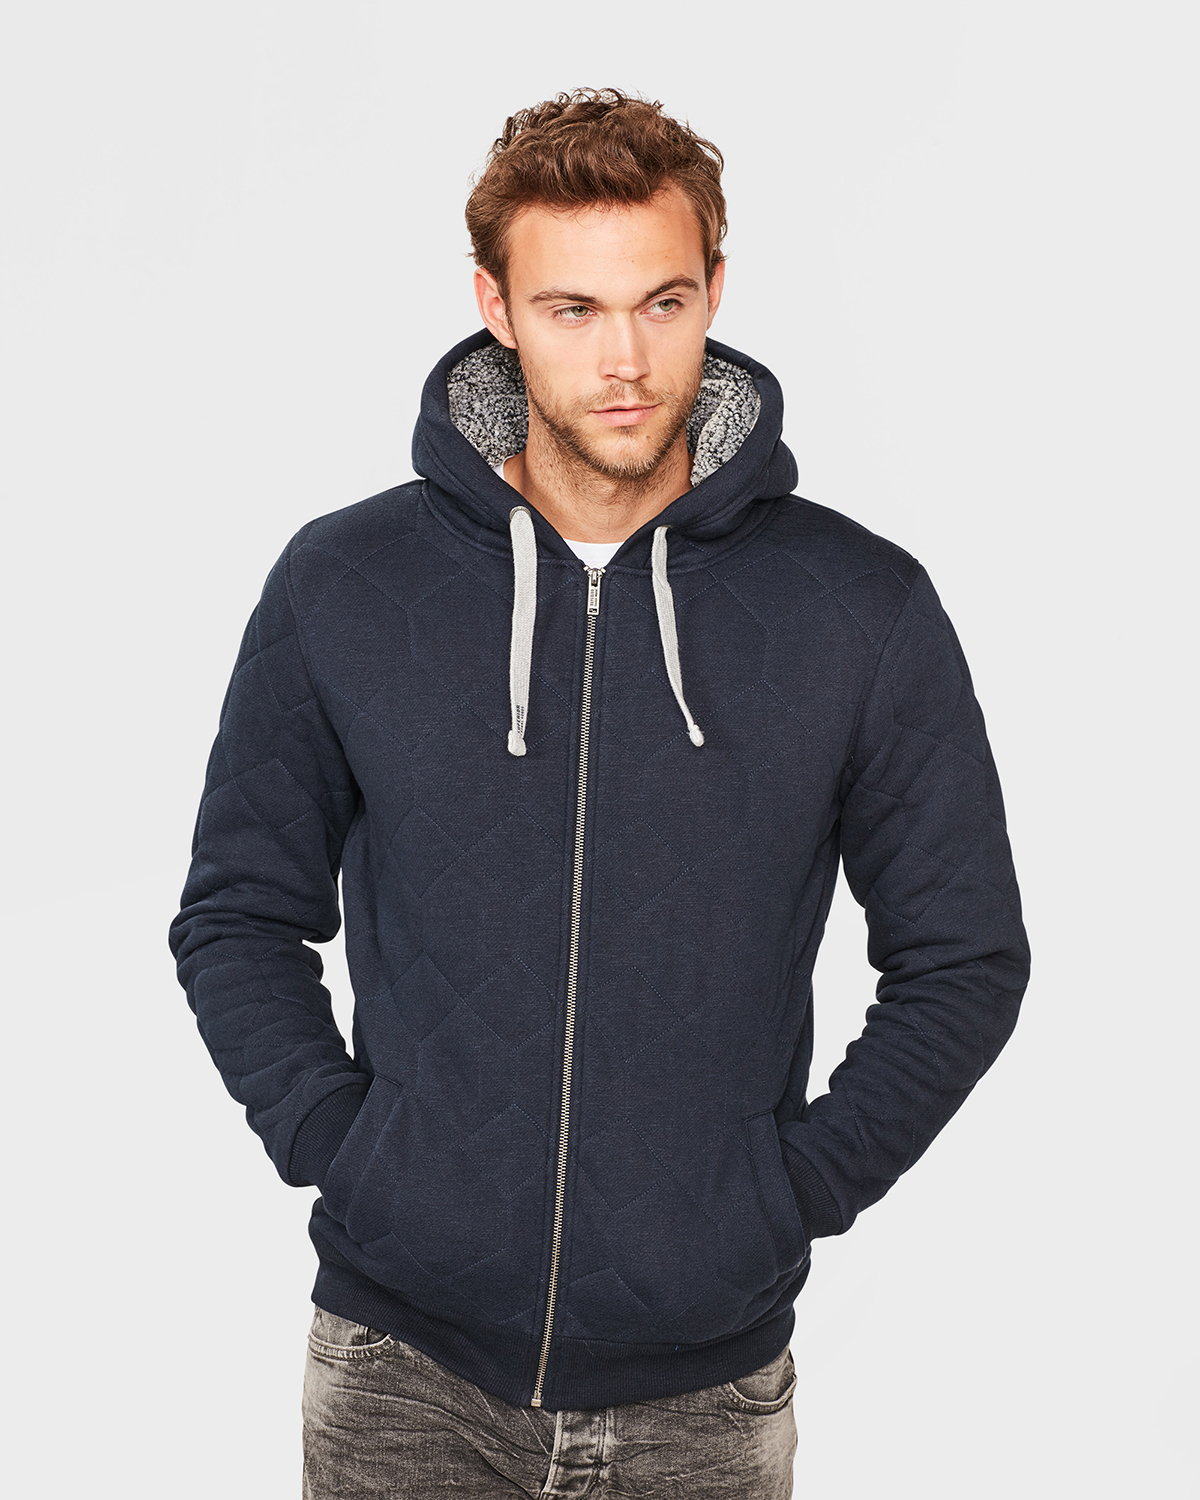 f0b7739144d4b VESTE QUILTED SWEAT HOMME   80066644 - WE Fashion